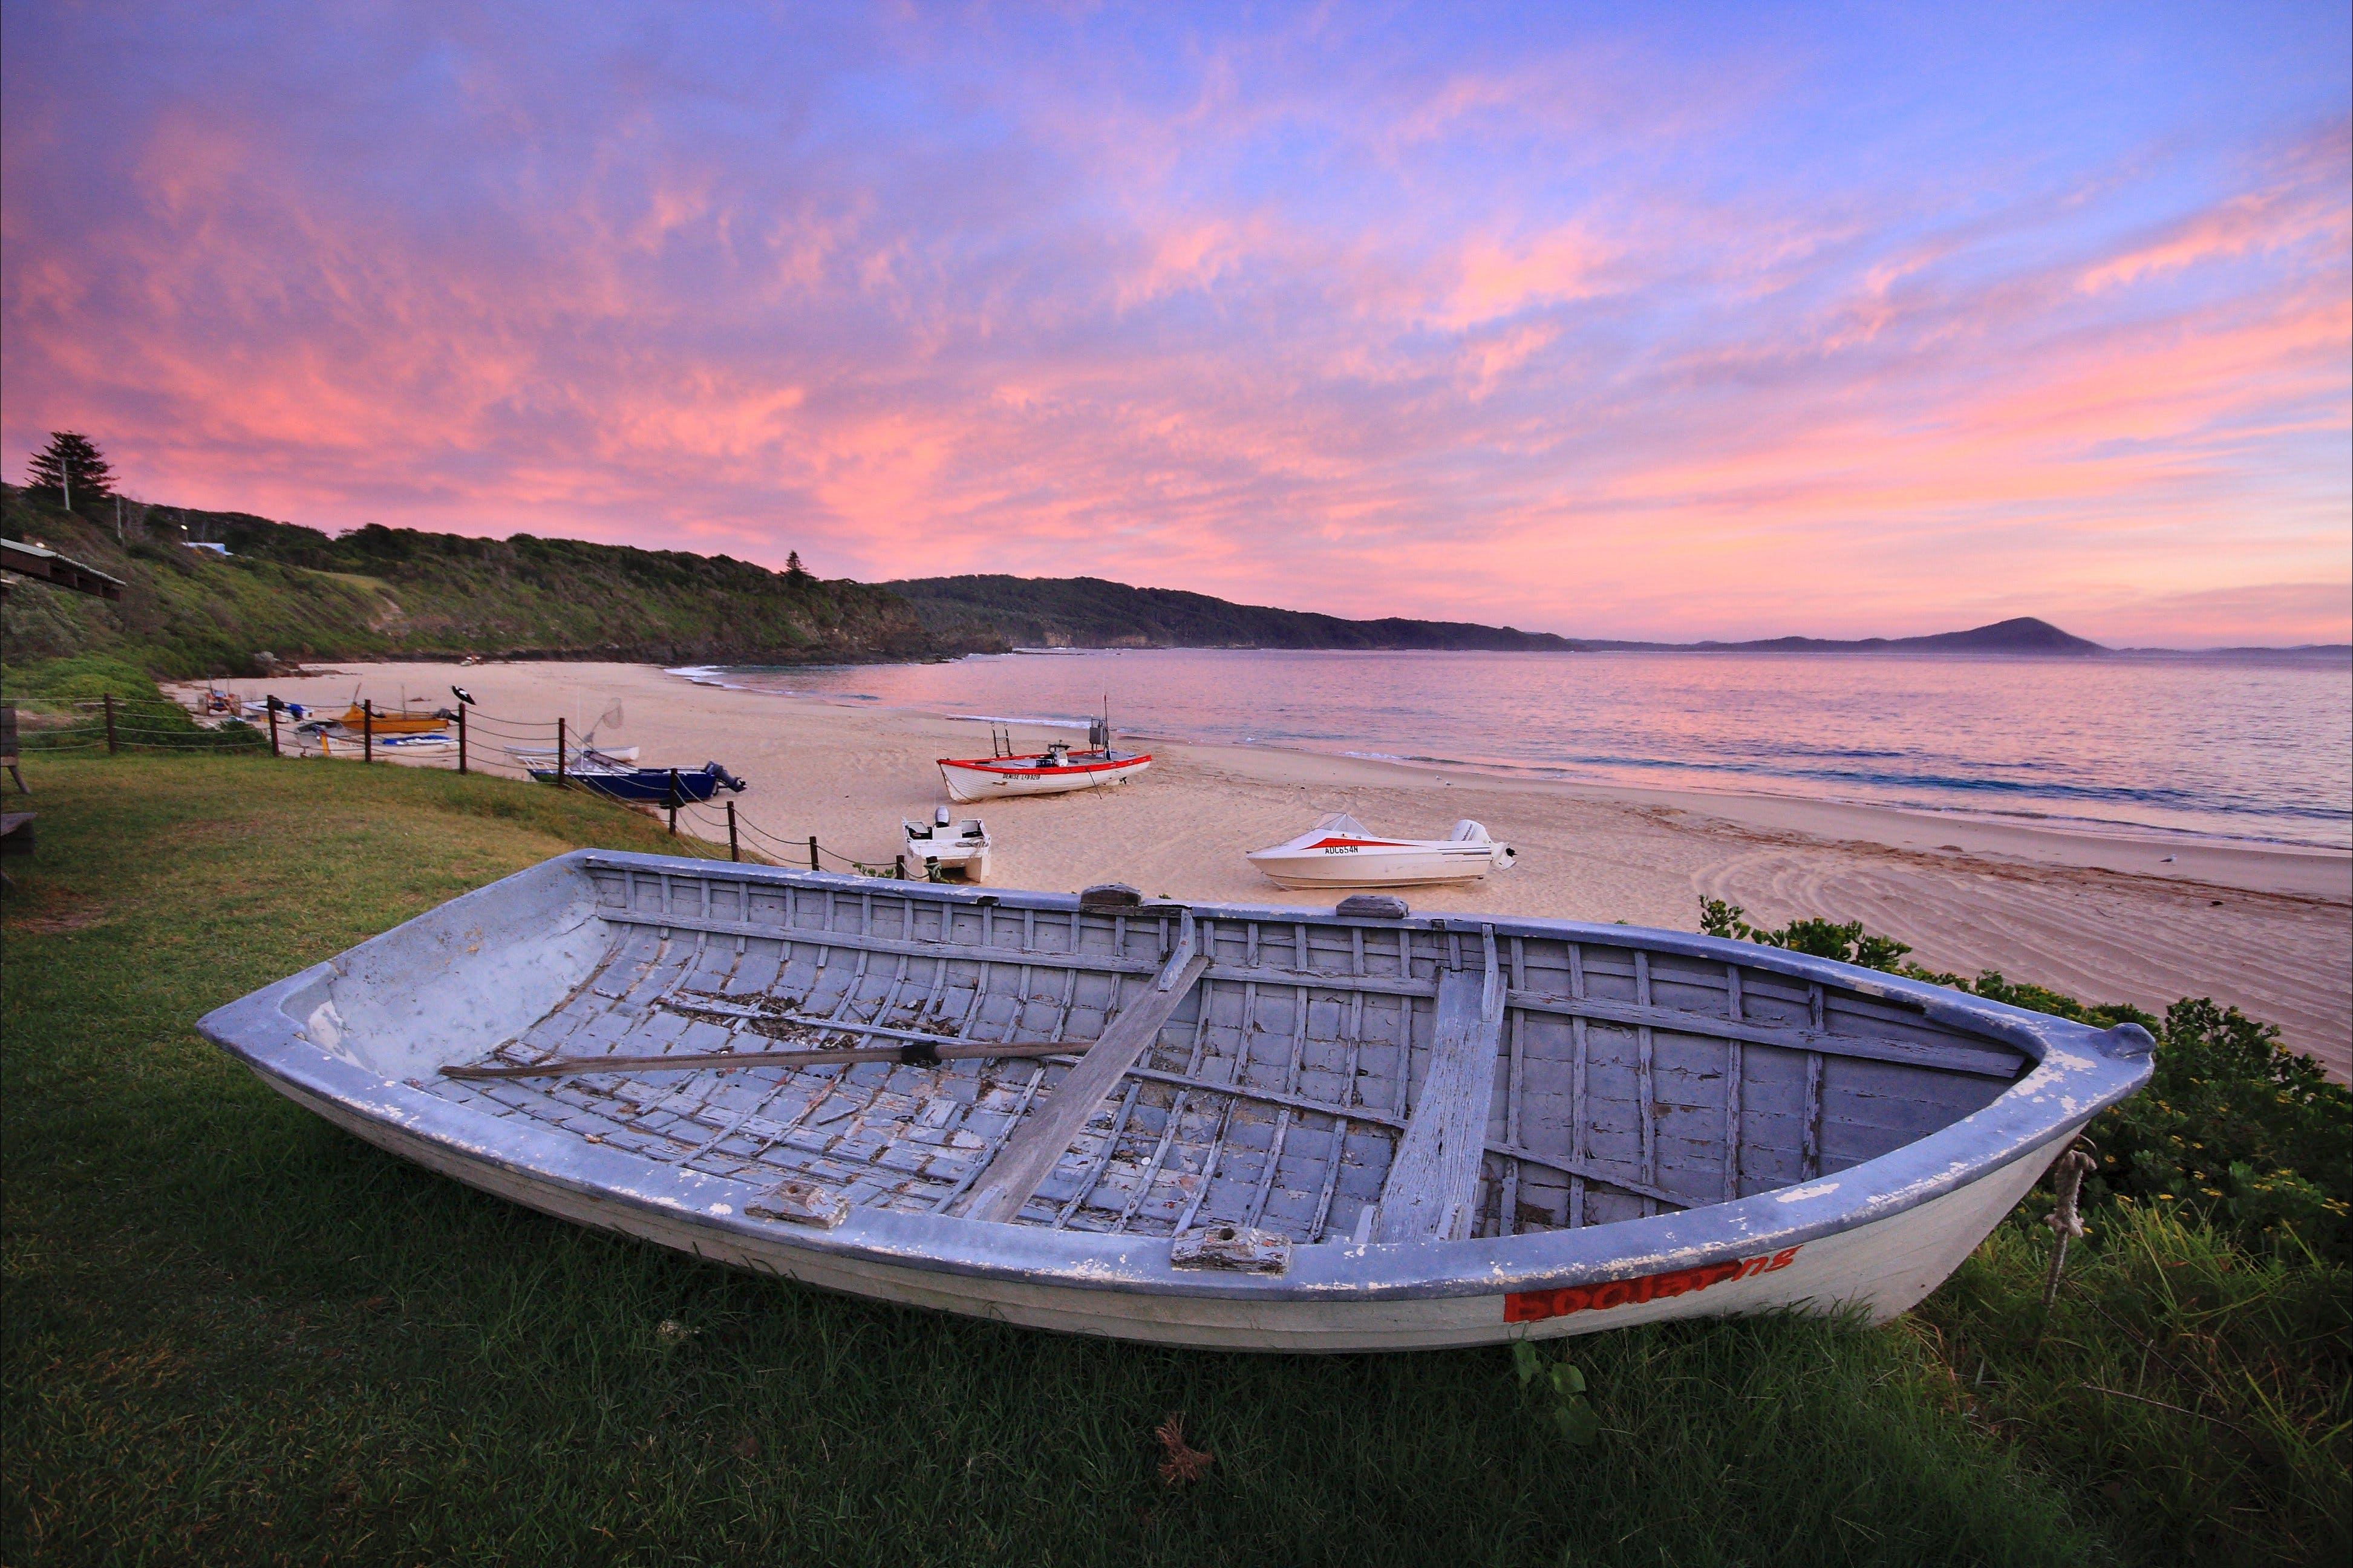 Boat Beach - New South Wales Tourism